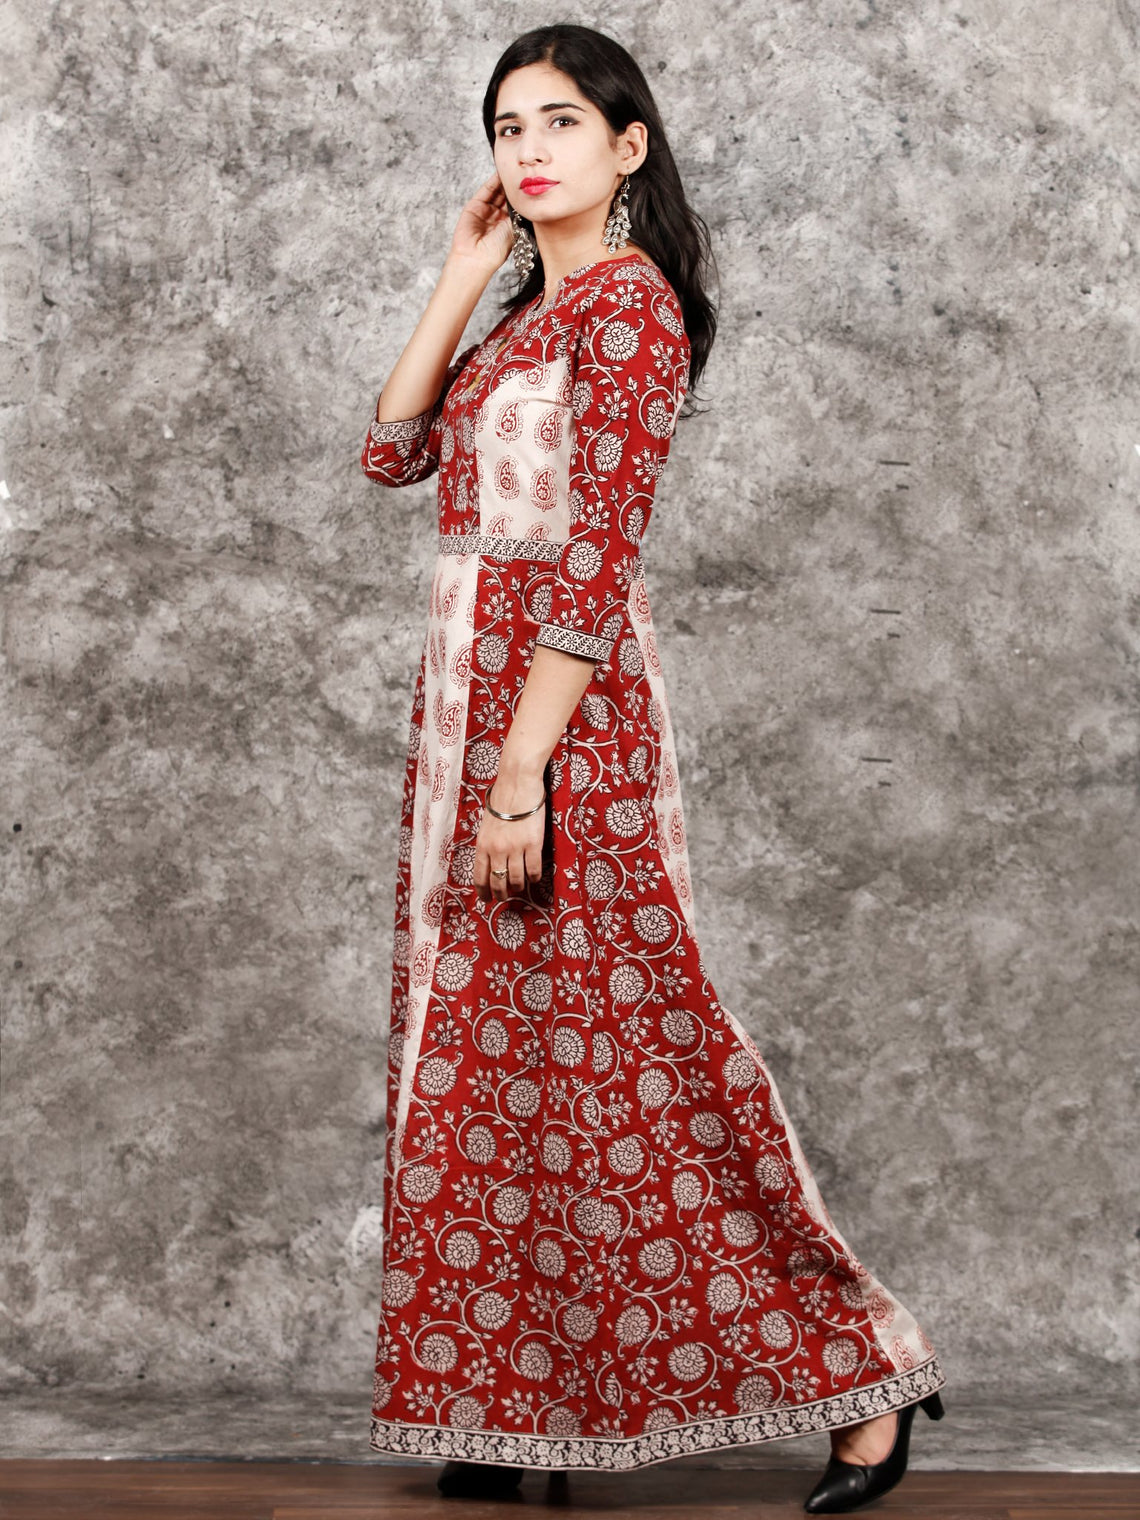 White Red Black Bagh Printed Asymmetric Panel Cotton Long Dress  - D309F1714